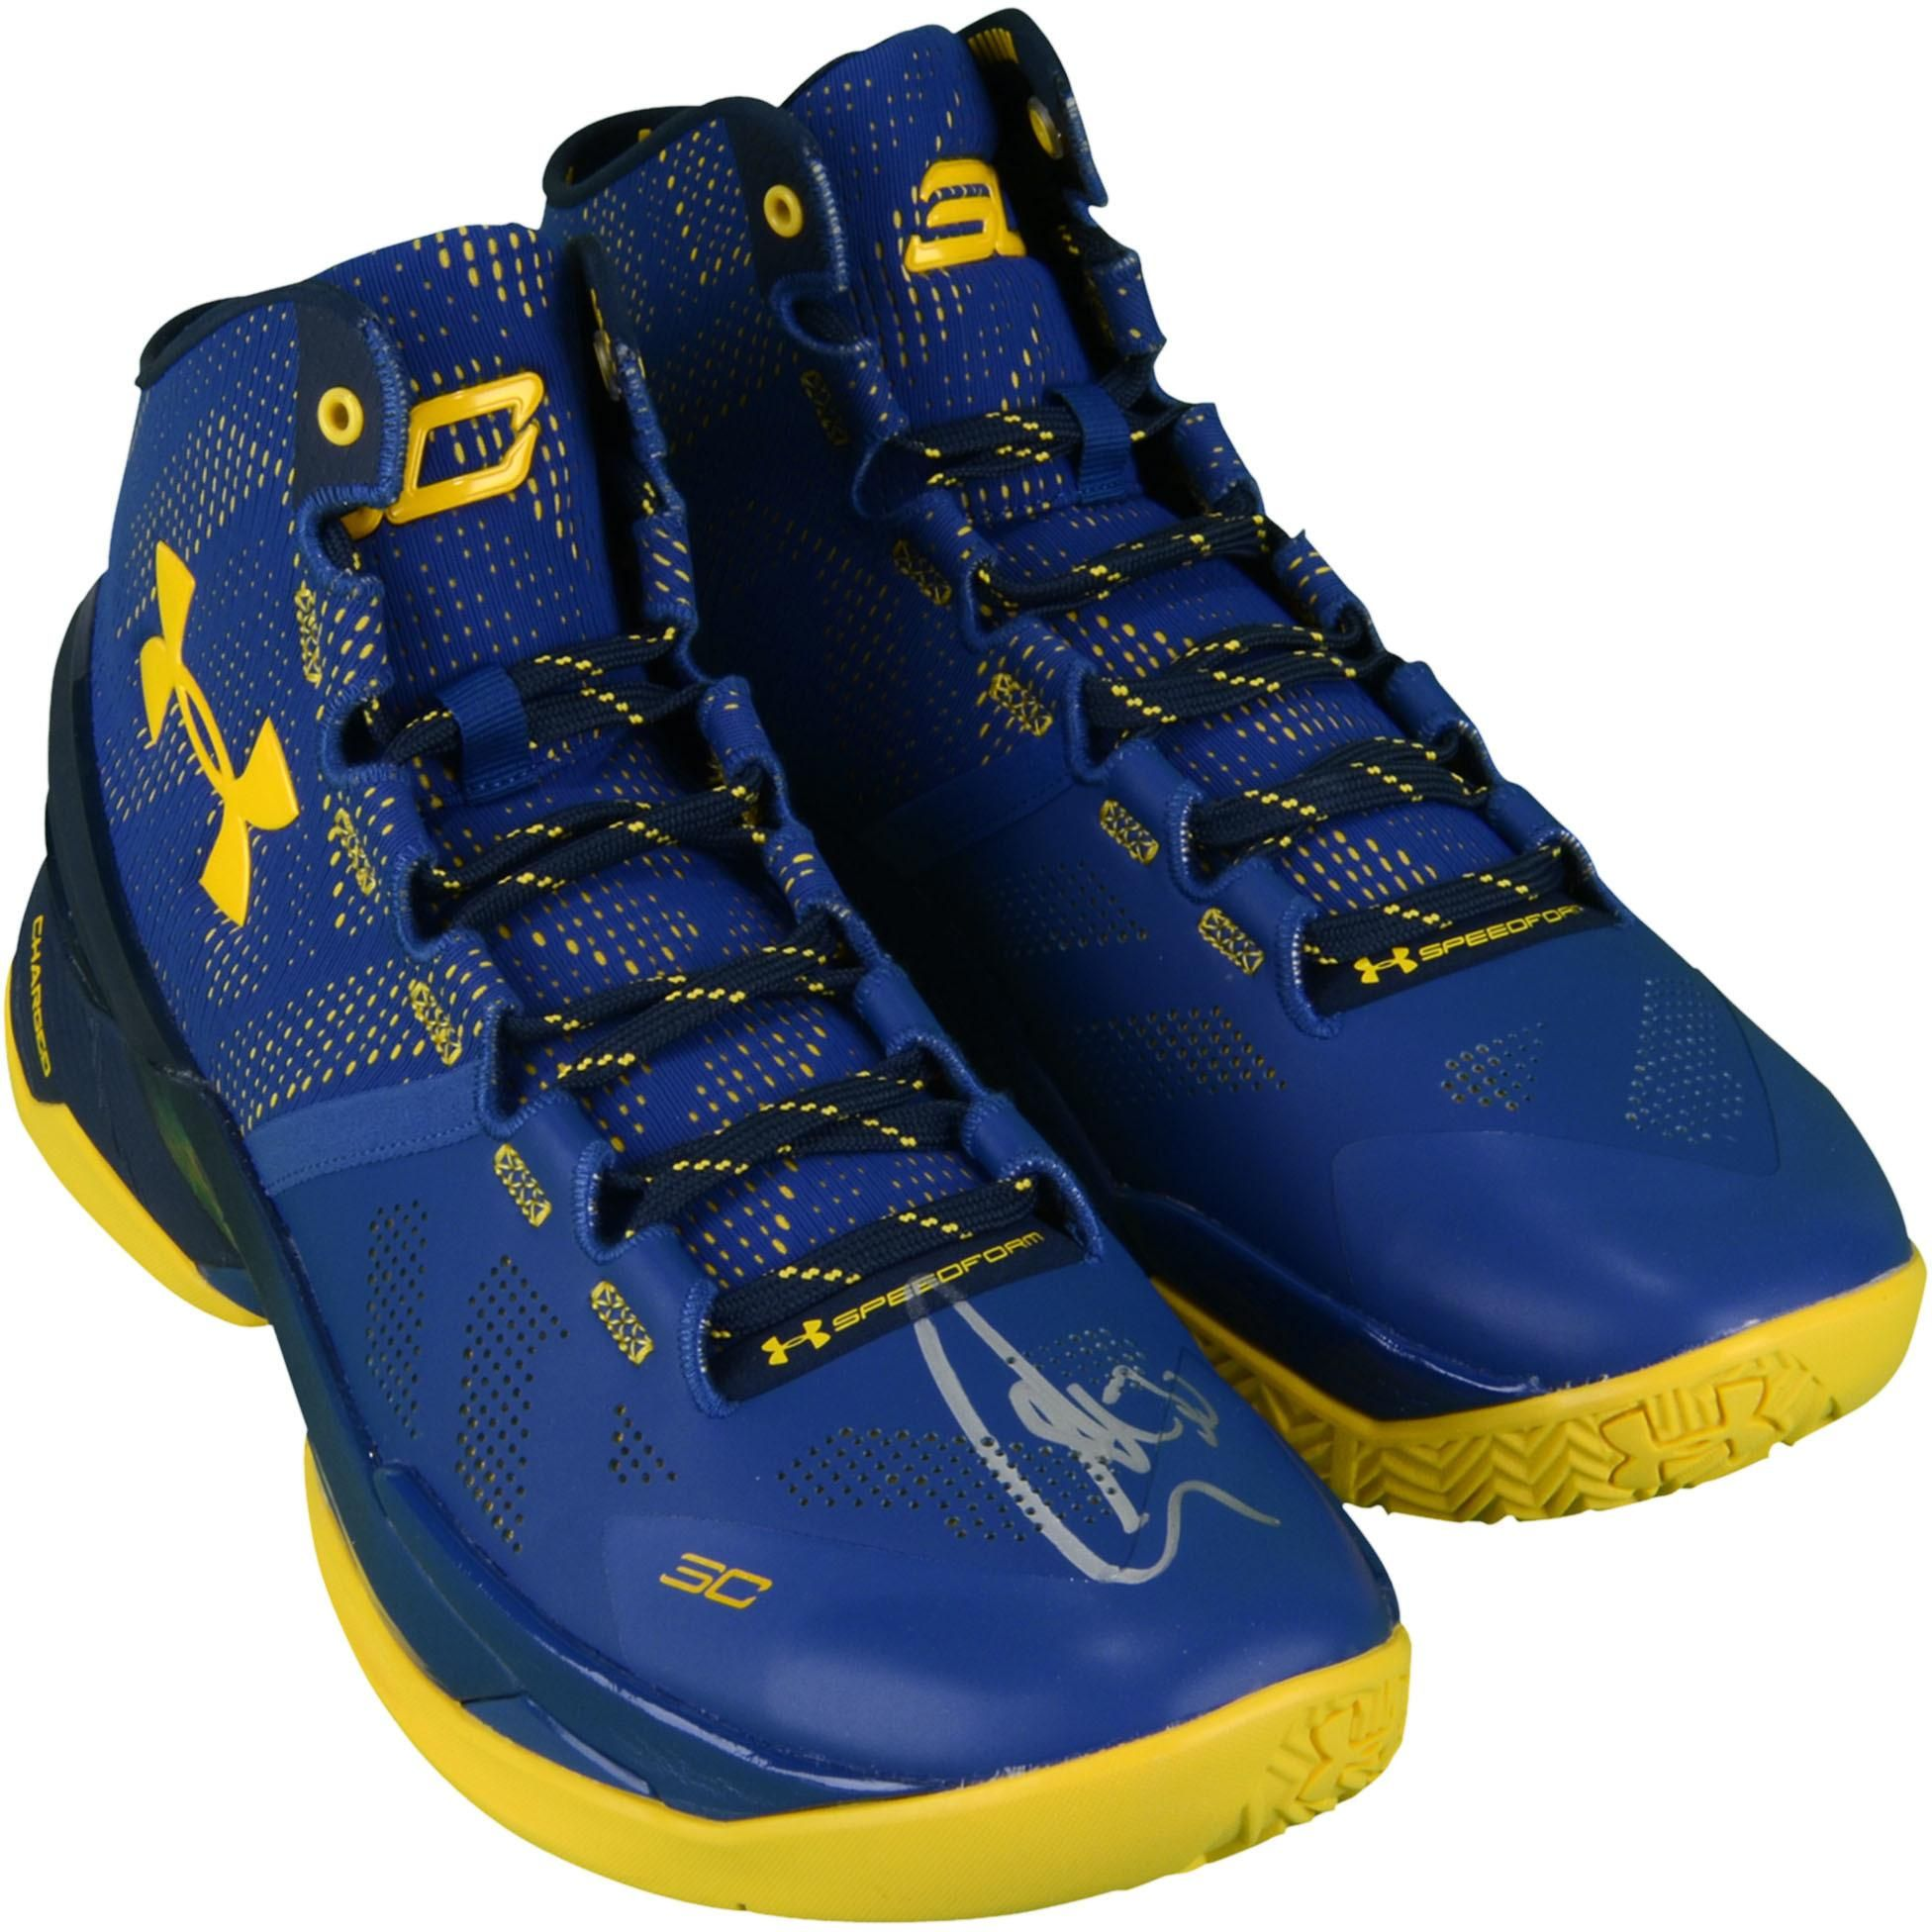 Stephen Curry Golden State Warriors Autographed Curry 2 Cobalt Blue and  Yellow Shoes